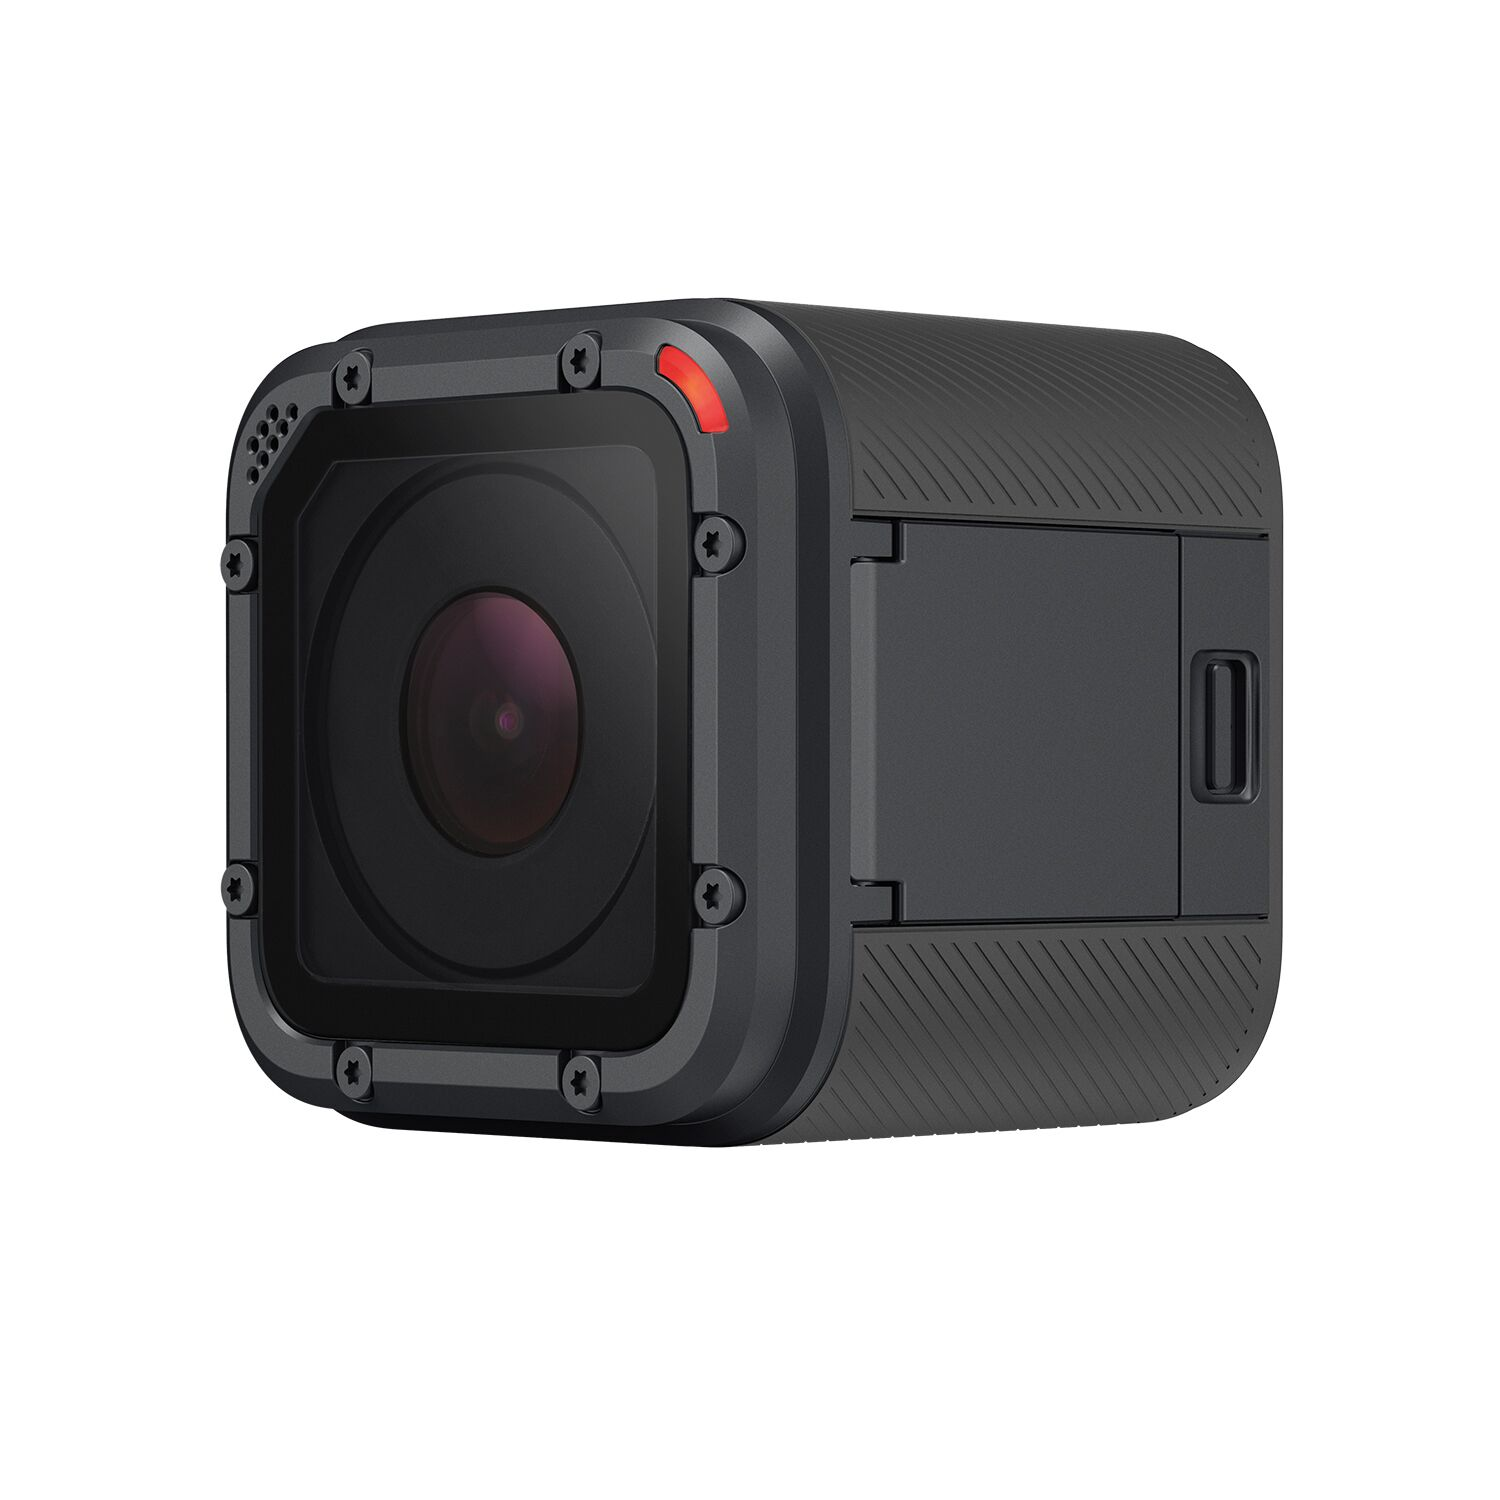 The [HERO5 Session](http://shop.gopro.com/EMEA/cameras/HERO5-session/CHDHS-501-master.html) is also a great update that puts many of the features of the HERO5 Black in a smaller body at a more affordable price point.